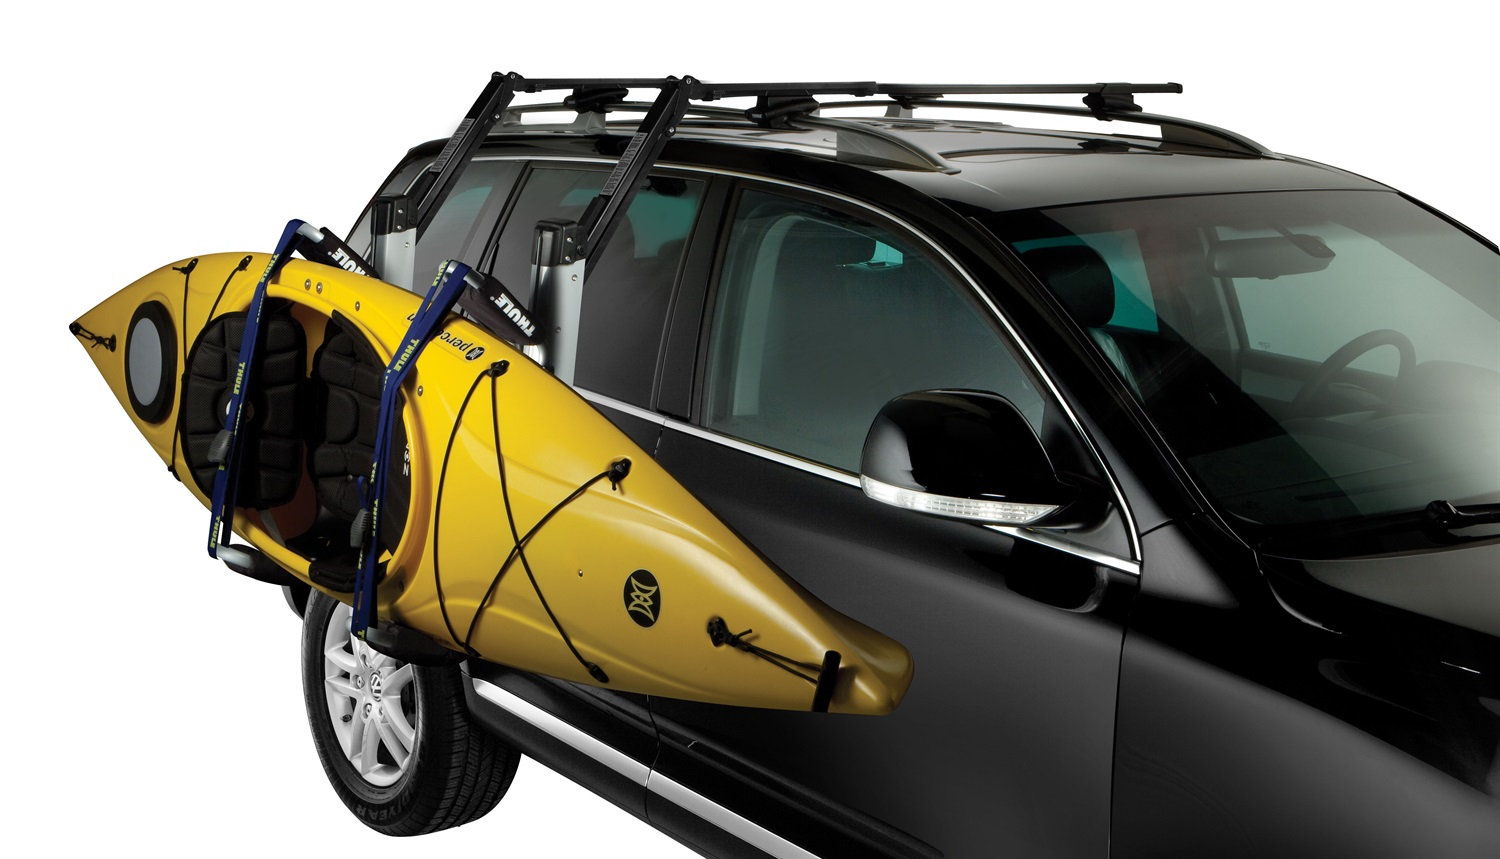 Roof weight capacity for 2013 Jetta Sportswagon TDI with